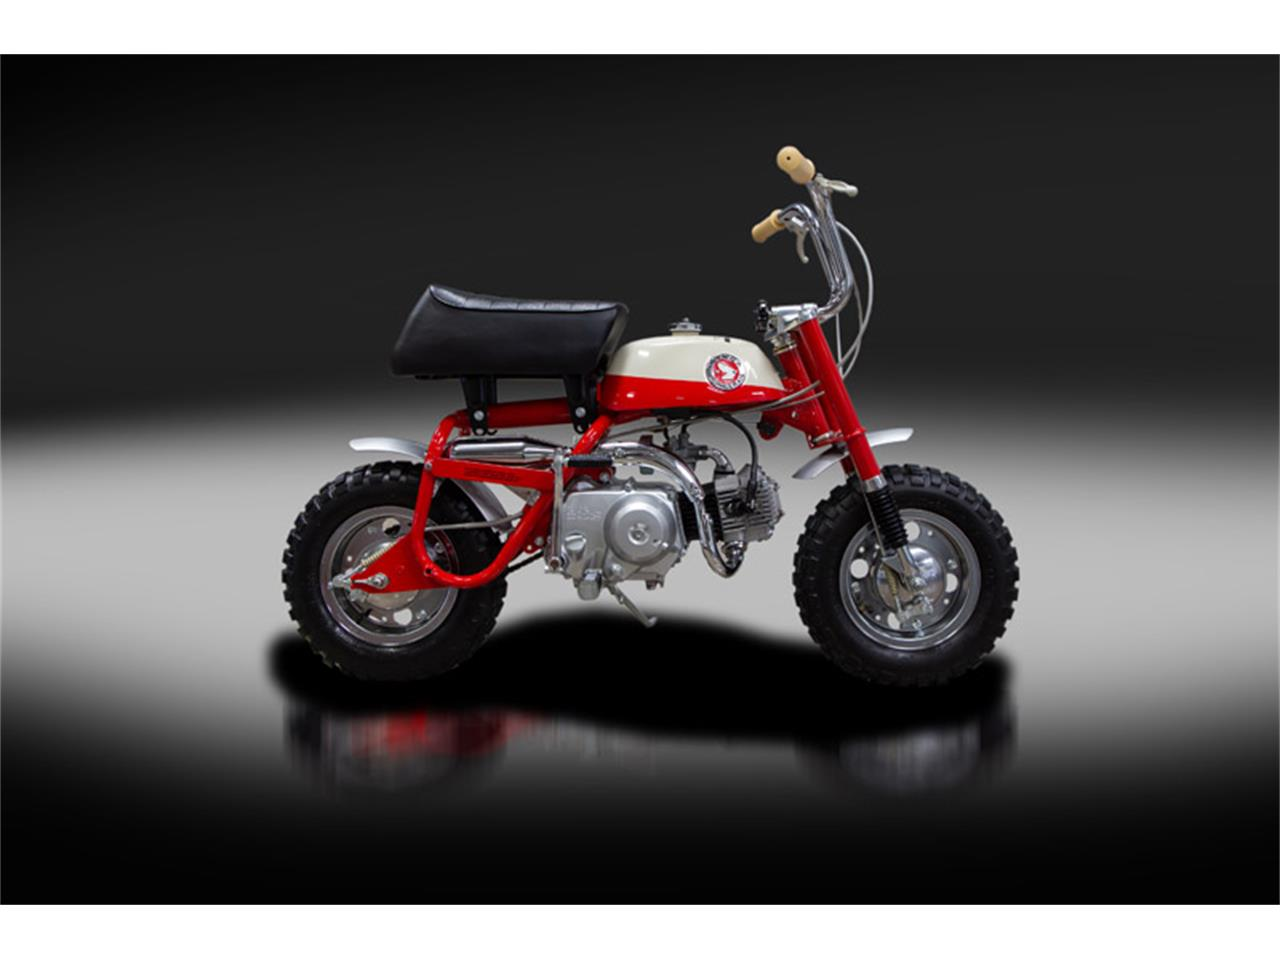 1968 Honda Minibike (CC-1297657) for sale in Seekonk, Massachusetts